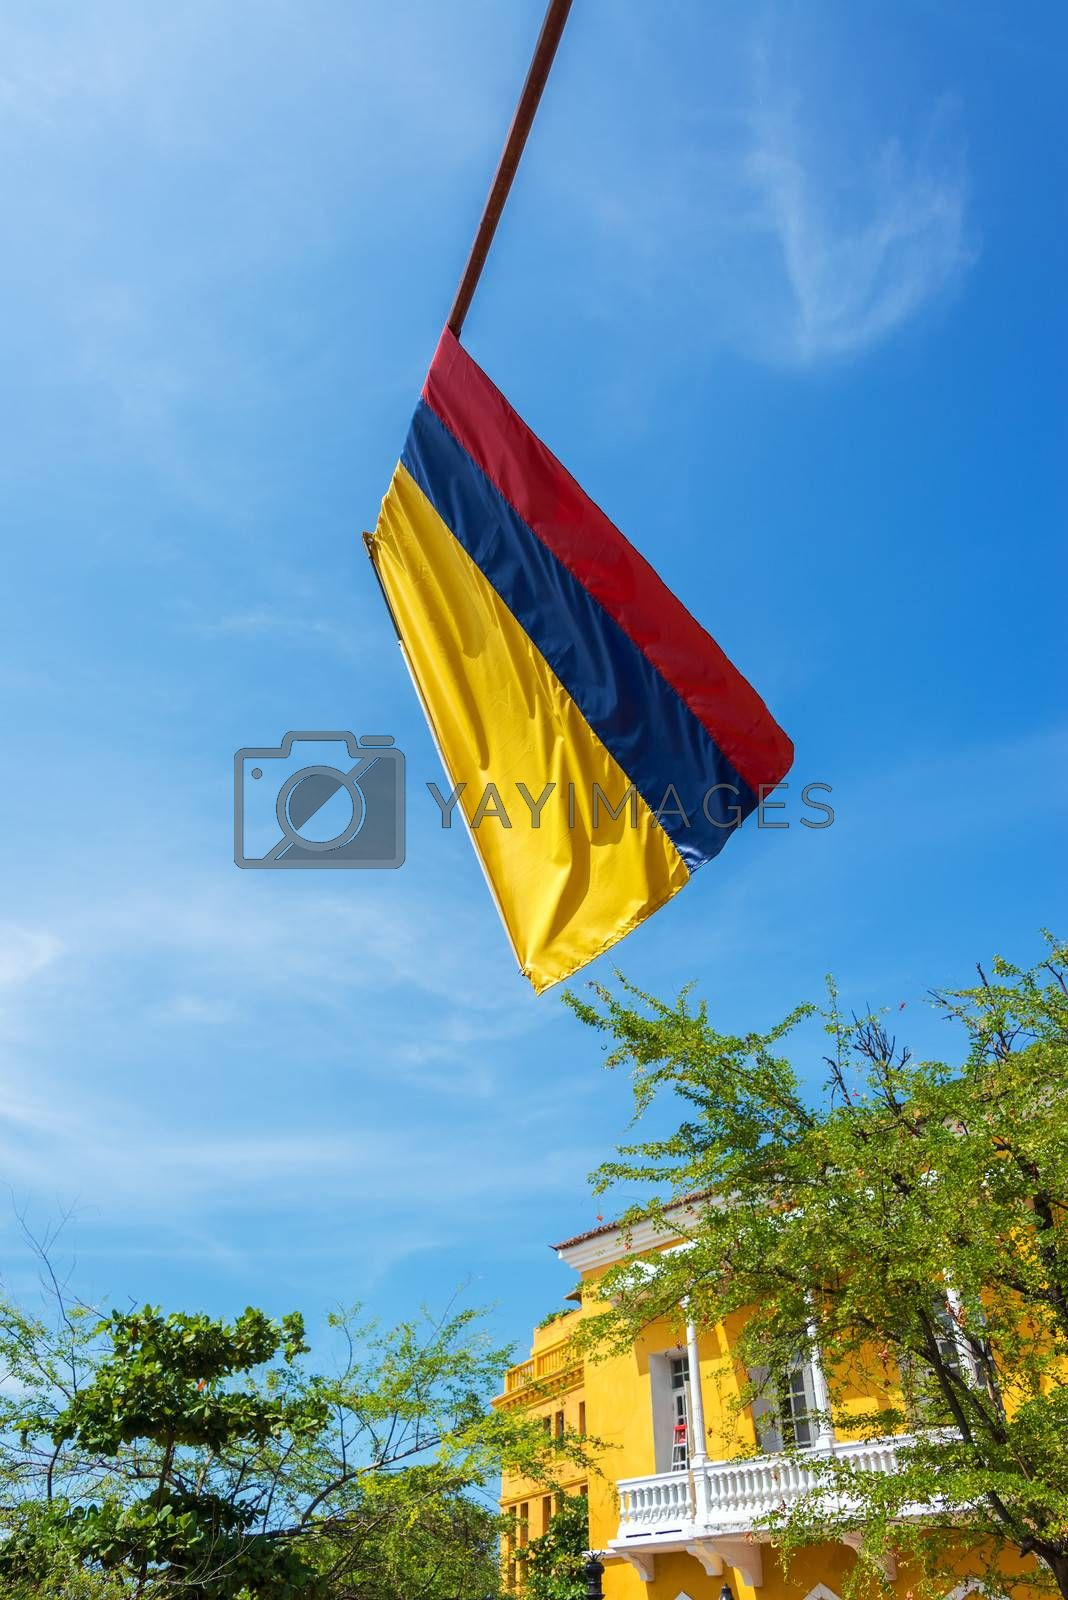 Colombian flag in the old town of Cartagena, Colombia with blue sky and colonial architecture